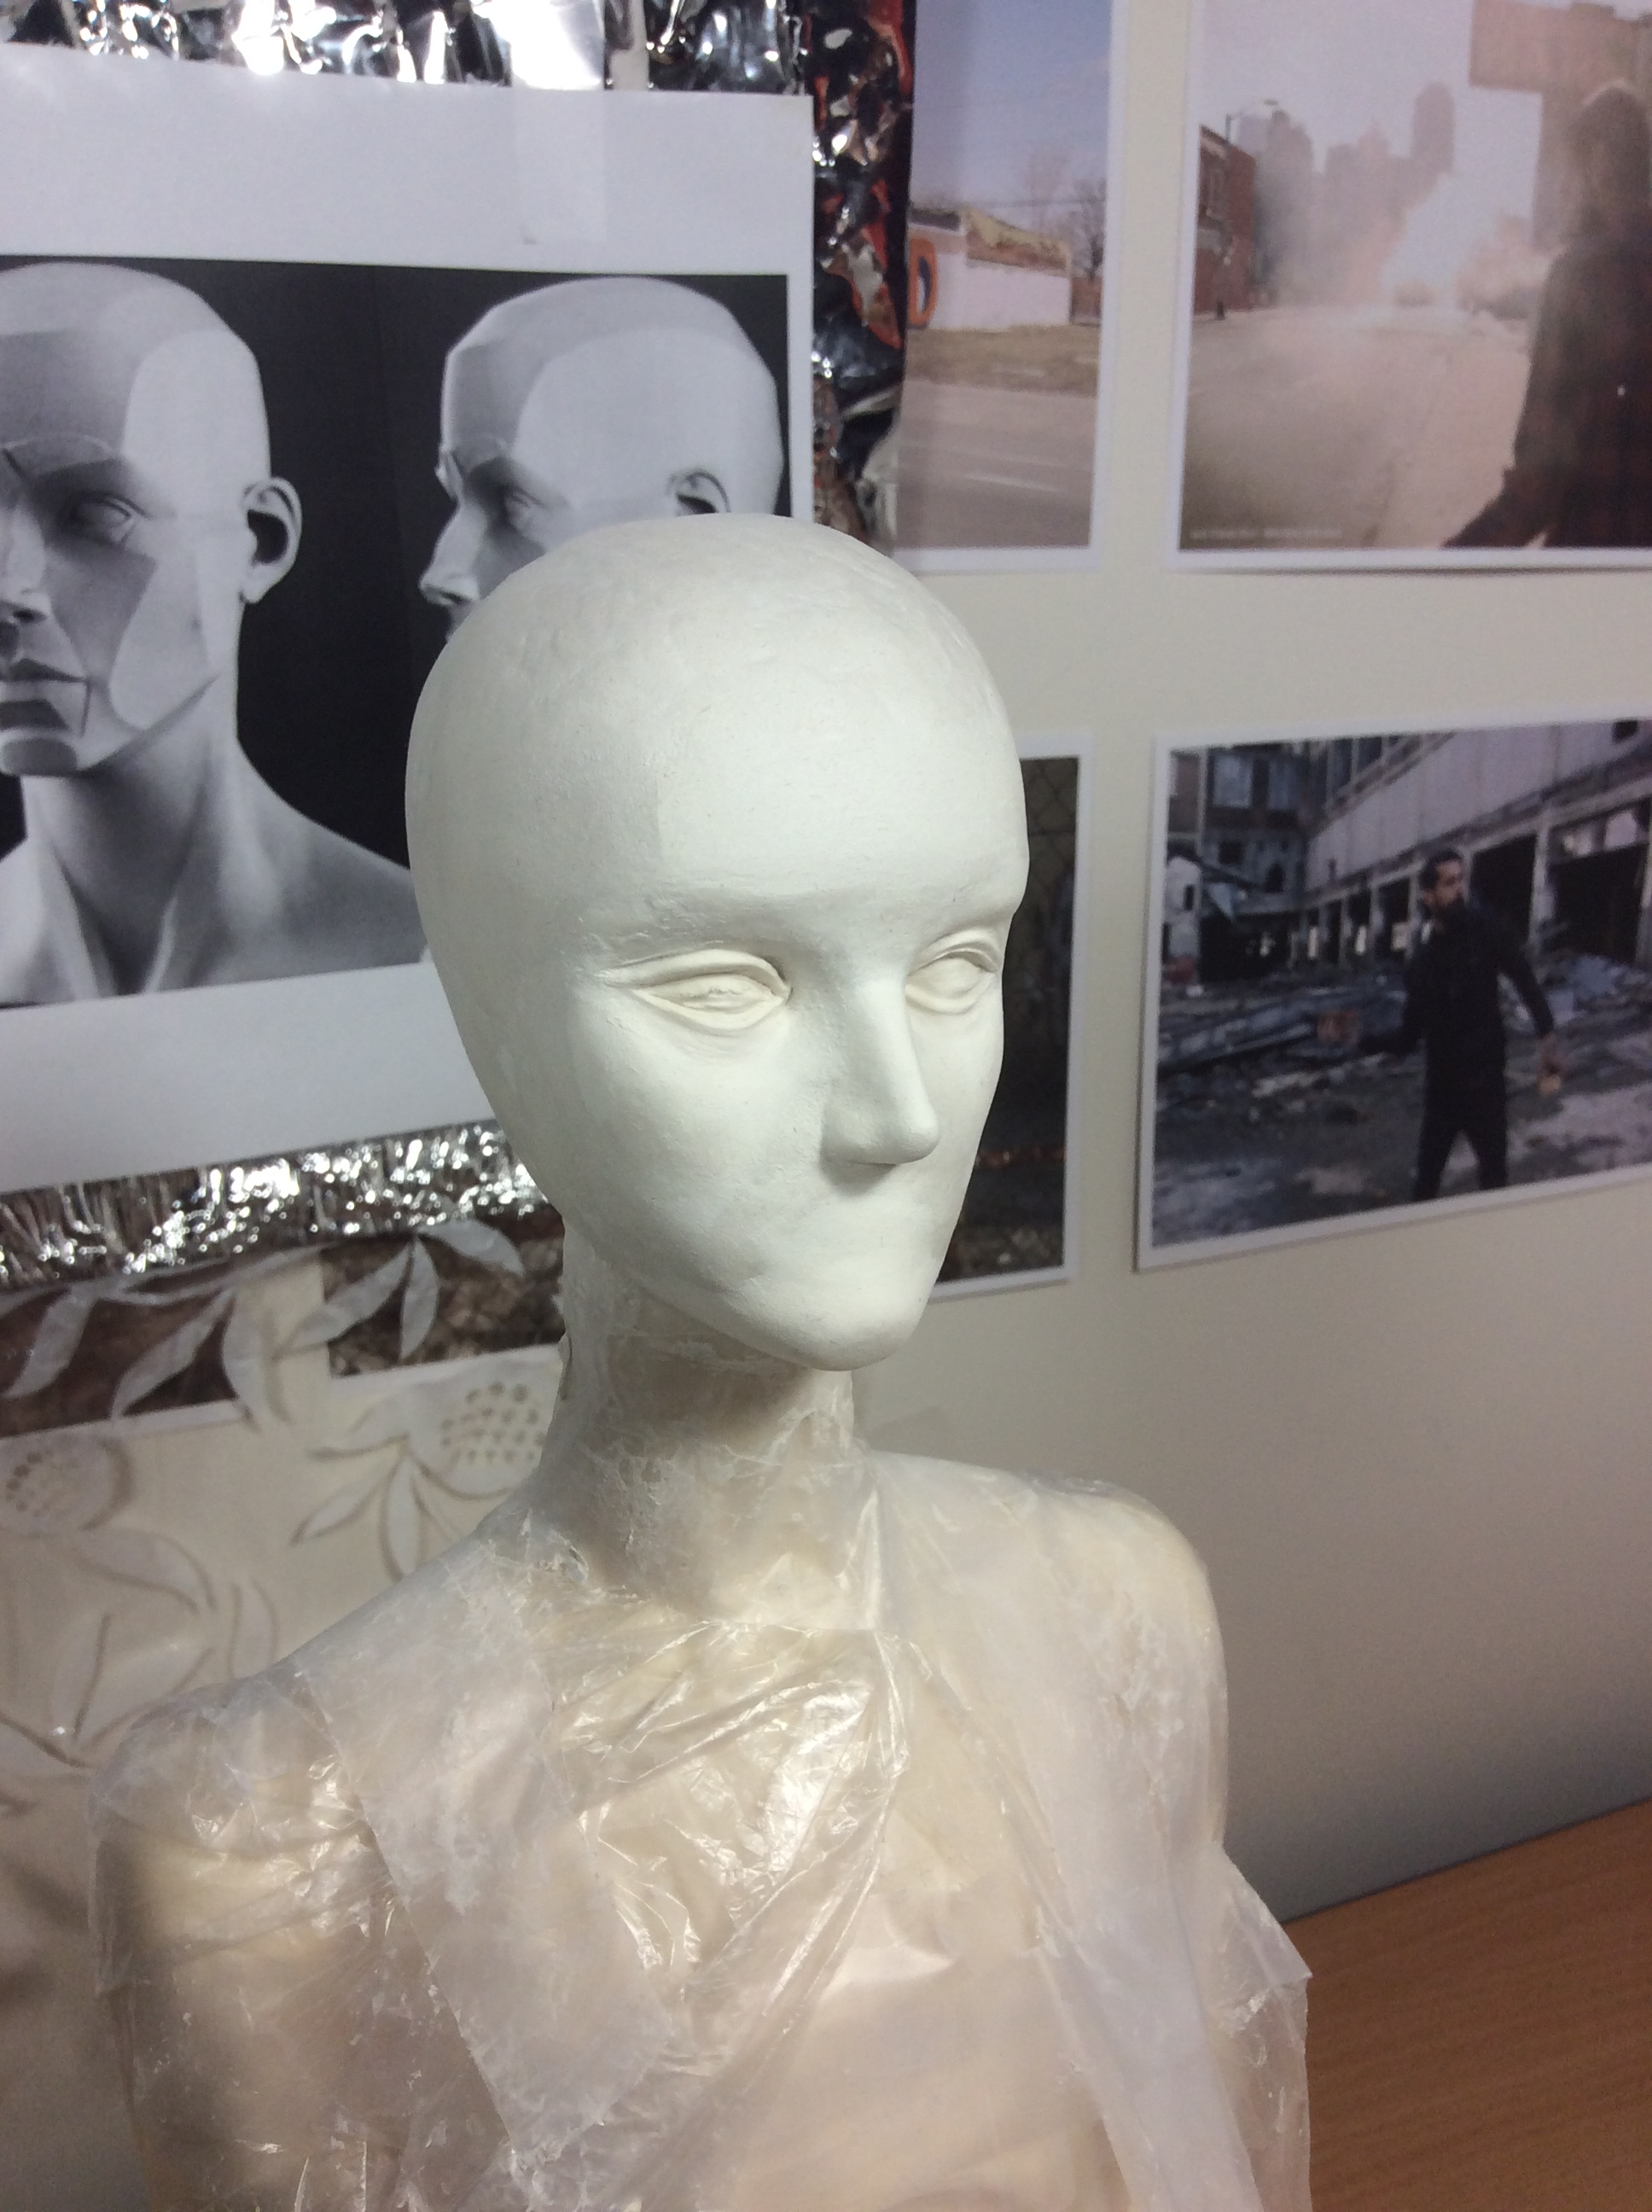 jemse---my-first-doll-head-making-progress-diary-part-2_32293229681_o